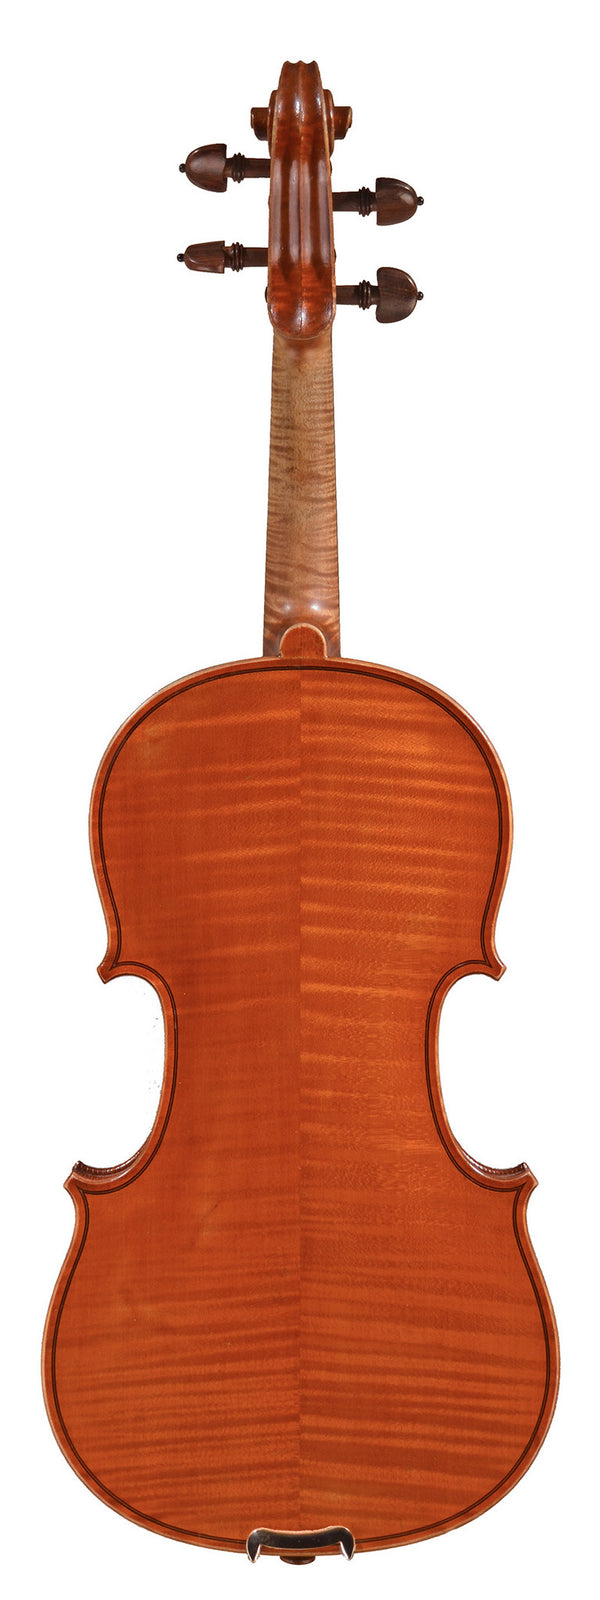 Emile Laurent Violin, France, 1909